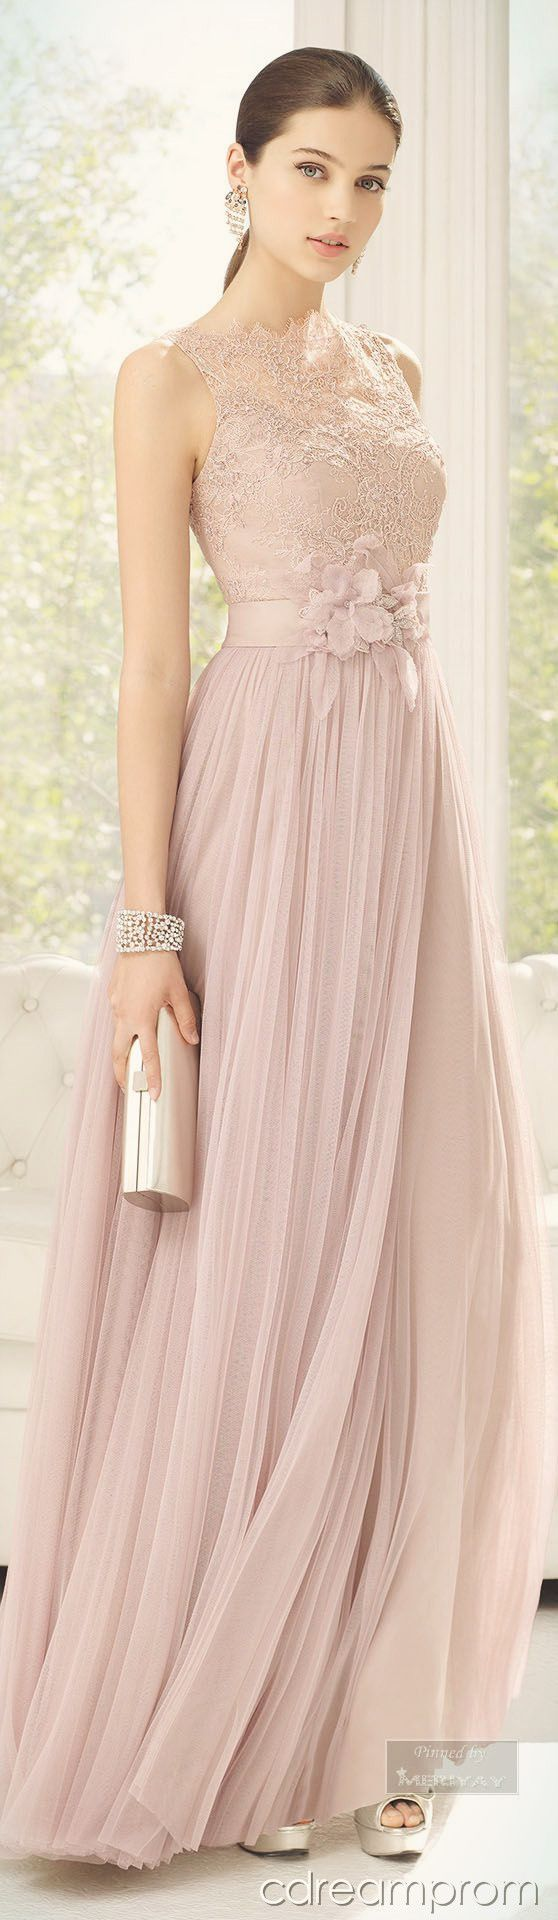 elegant prom dress prom gown